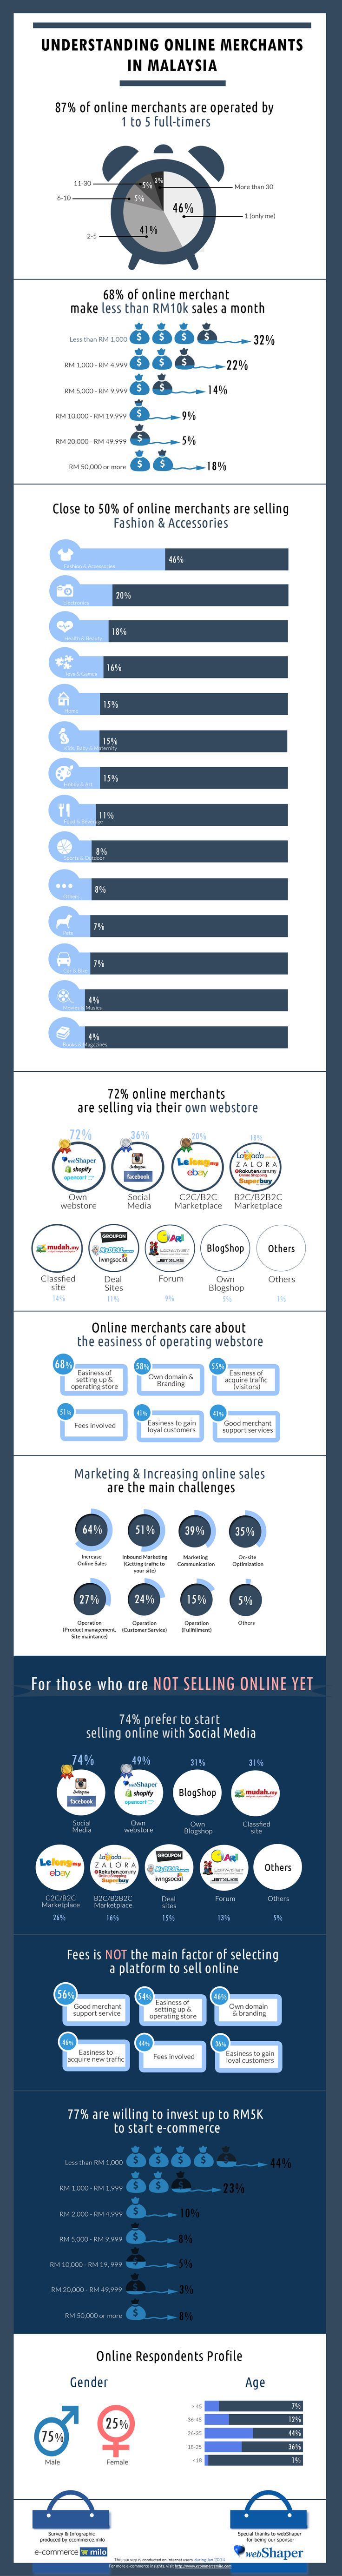 Survey on Selling Online in Malaysia #ecommerce #selling #online #merchant